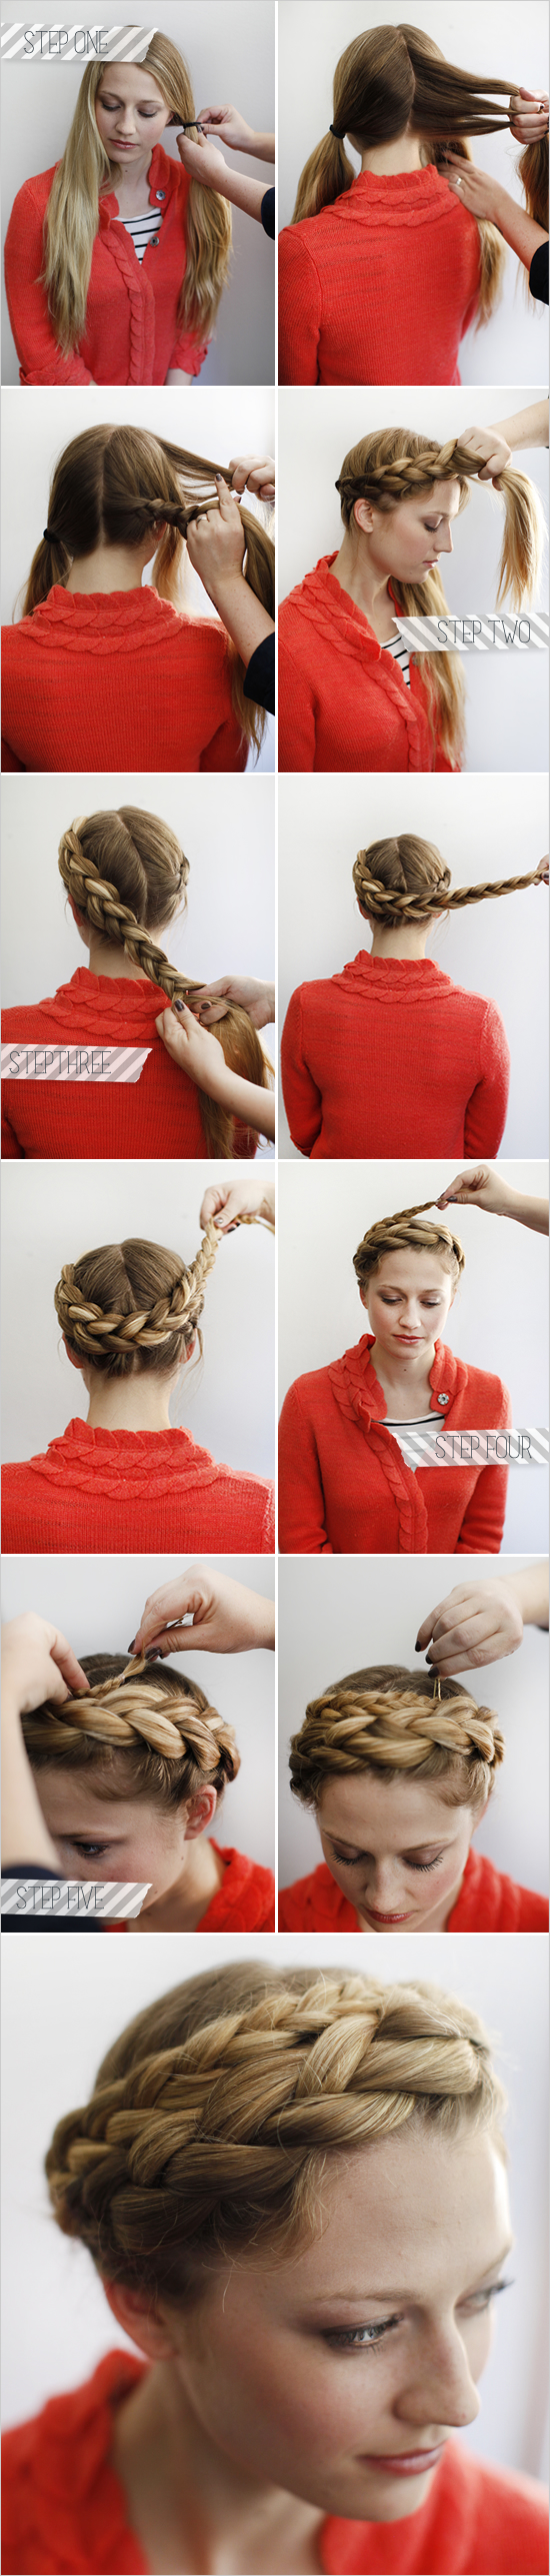 how_to_halo_braid1.jpg